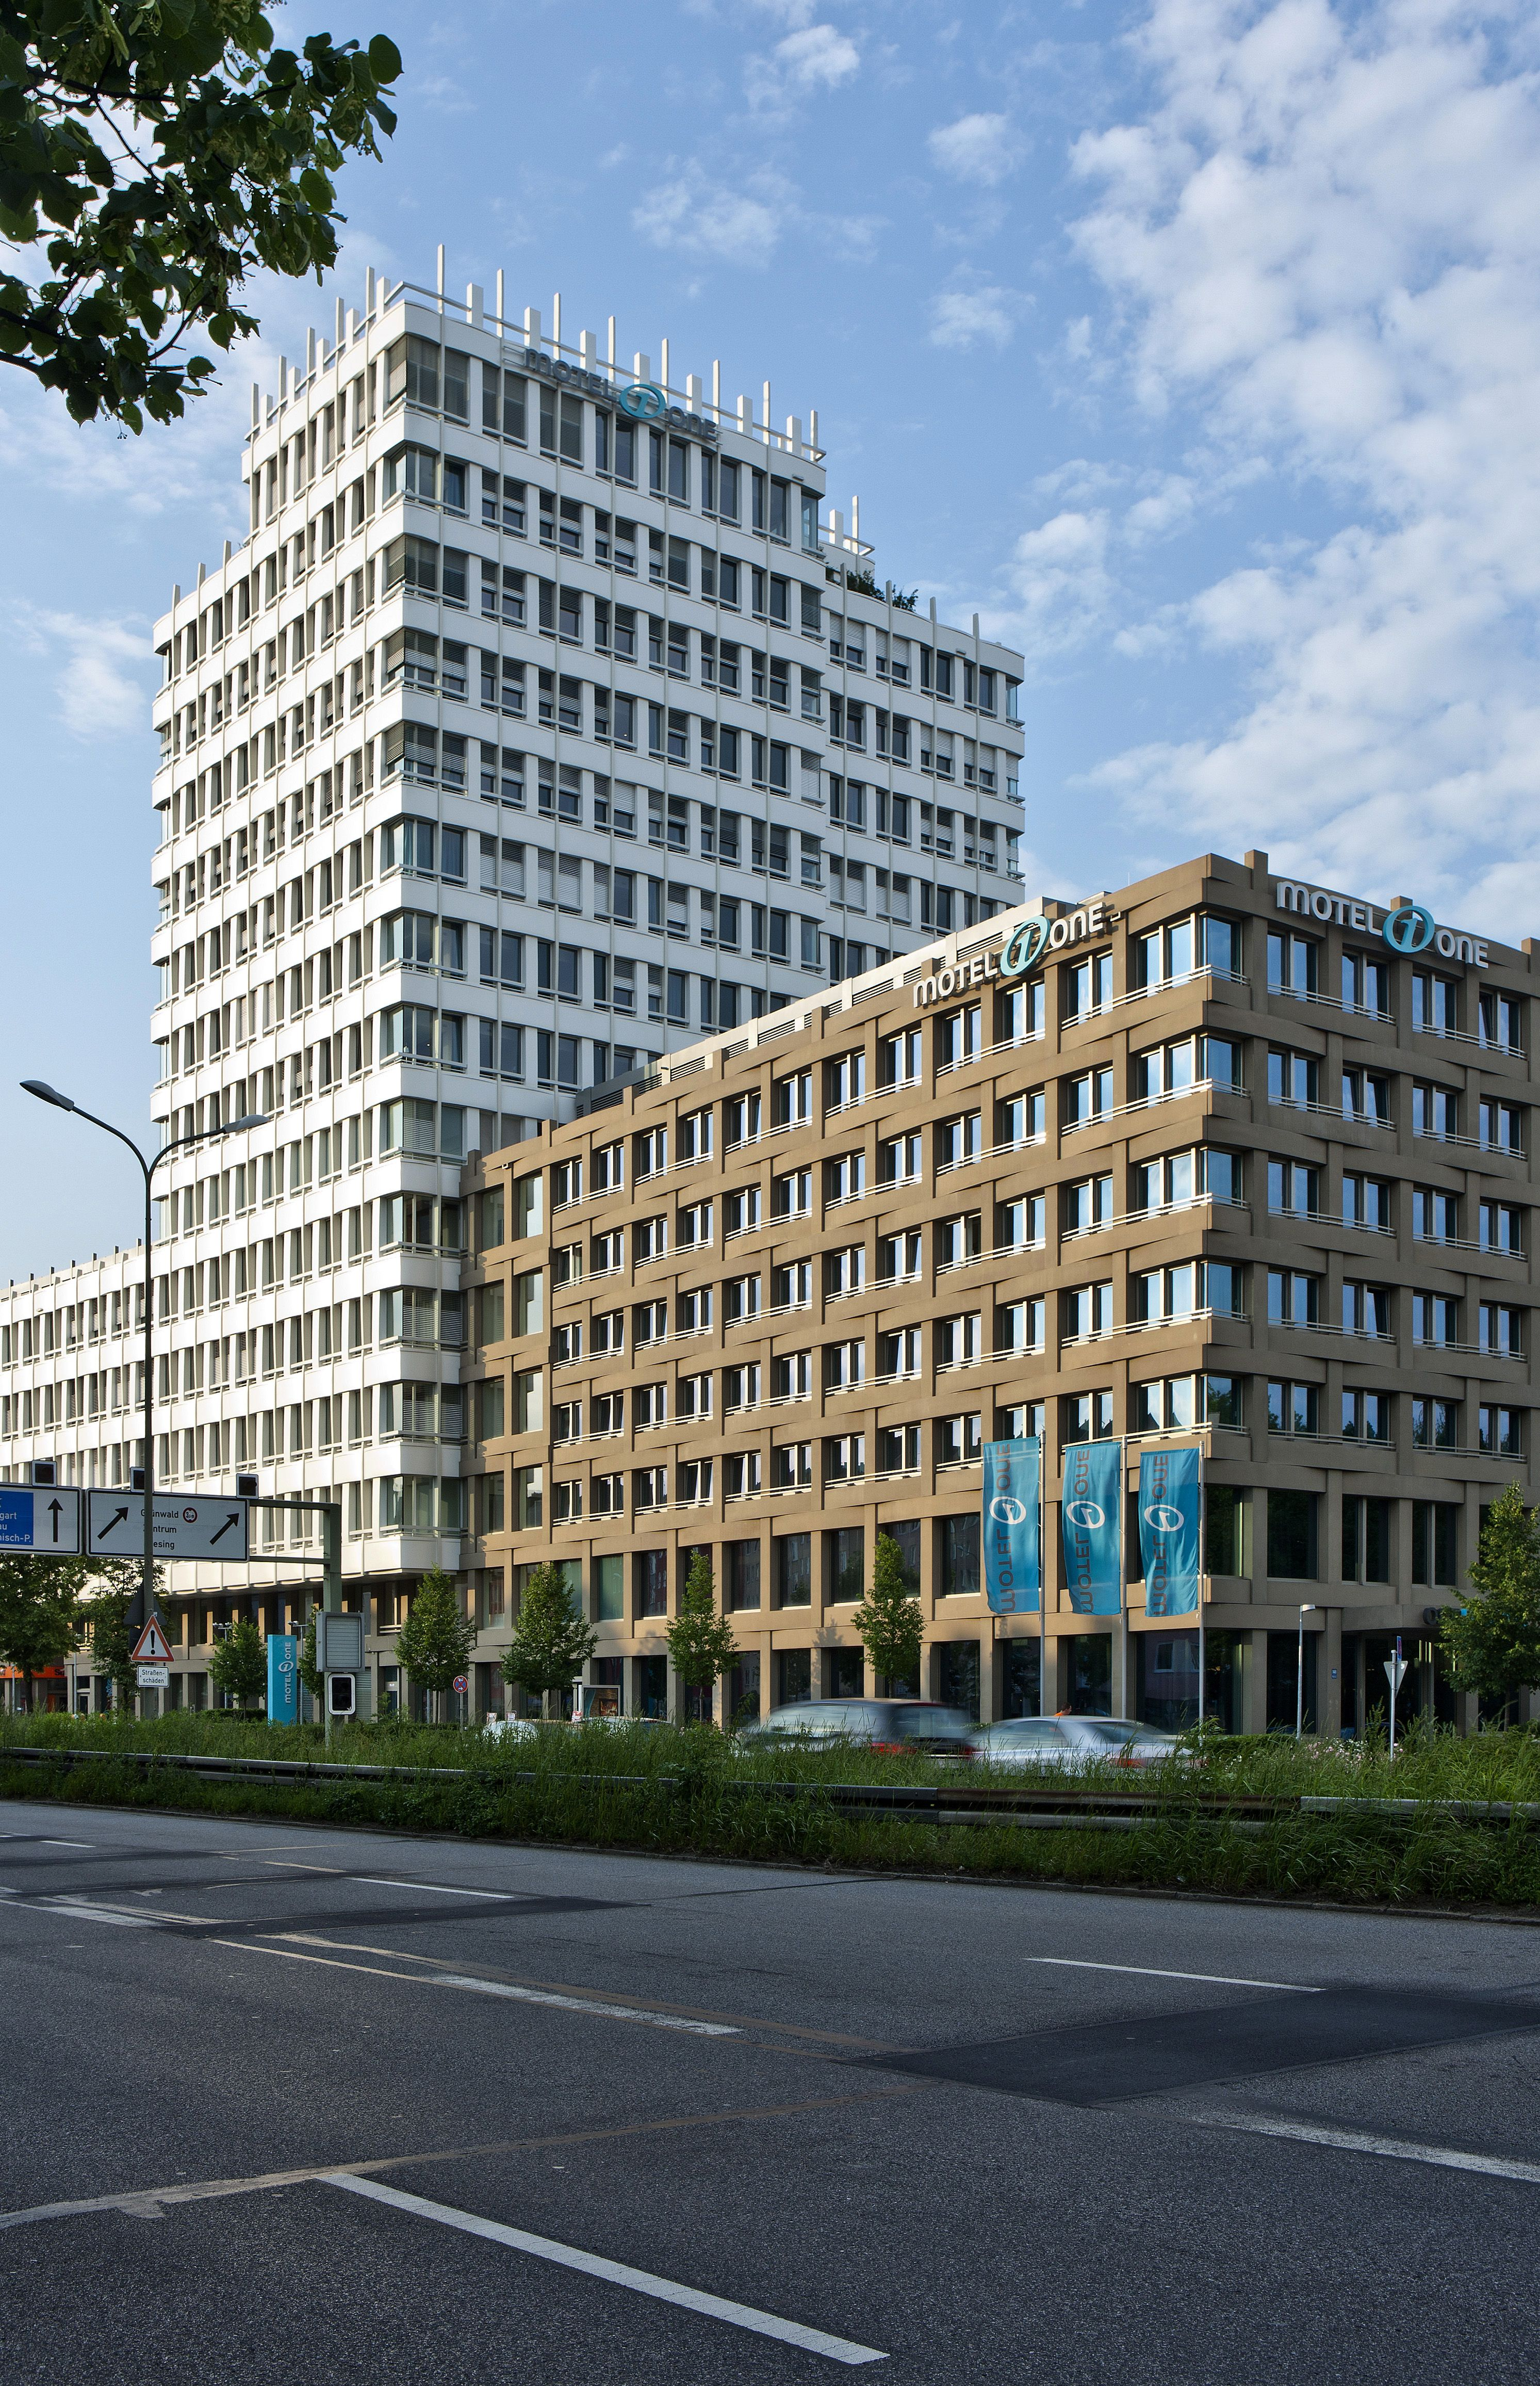 Hotel One Garching Hotel Munich Campus Motel One Motel One In Munich